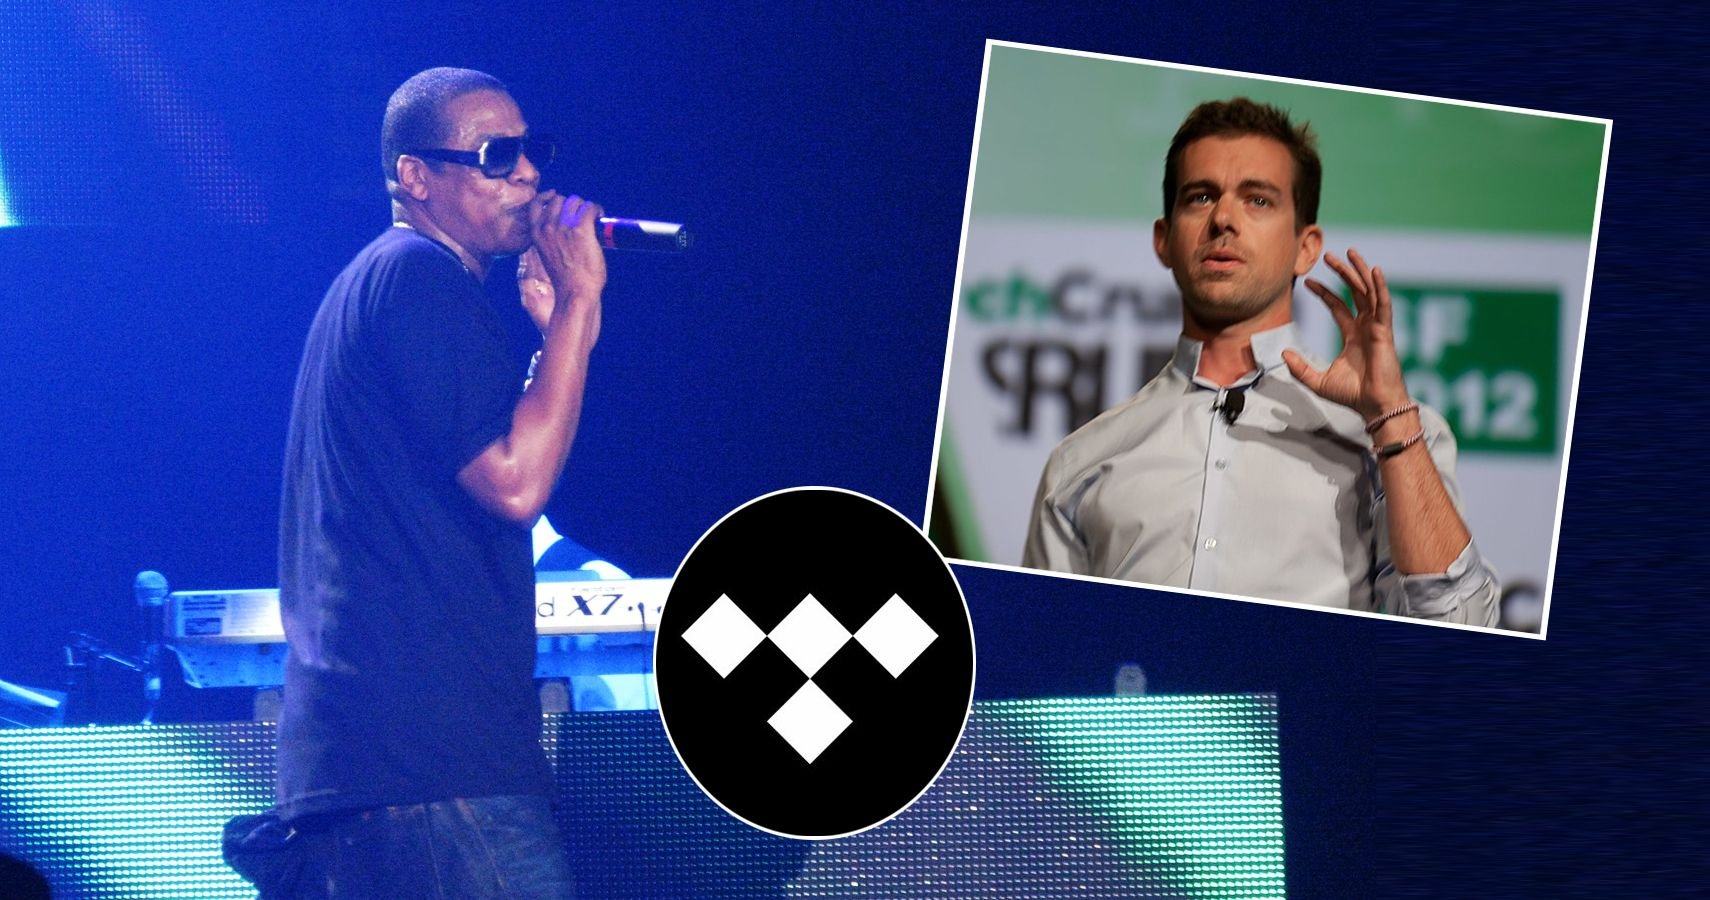 Jay-Z & Twitter CEO Jack Dorsey Discuss Plans For Tidal